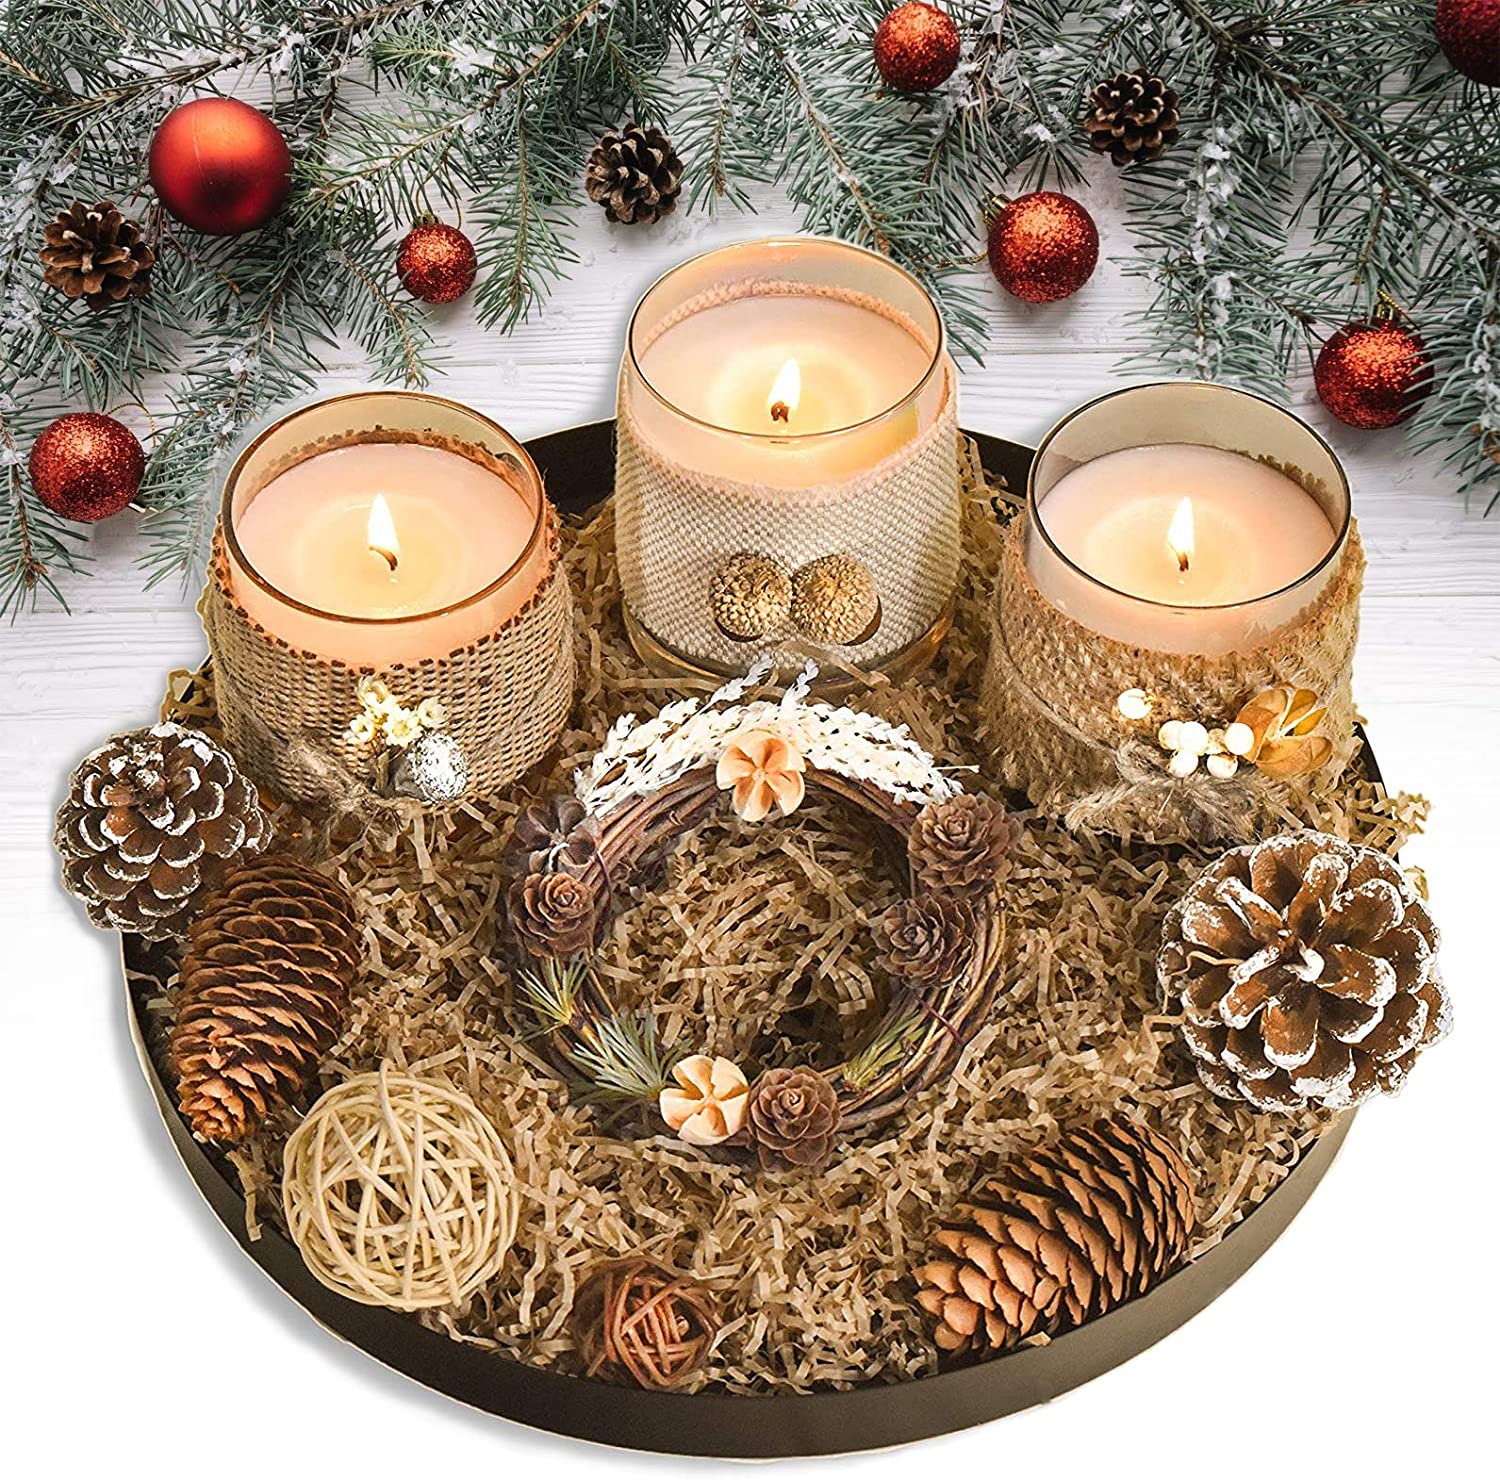 Le Sens Amazing Home Candle Holder Set House Decor Centerpiece 11 inches, Festive Wedding Rustic Family Candles Marriage Ceremony Candles Burlap Lace Pinecones Scented Candle Set (Wreath)